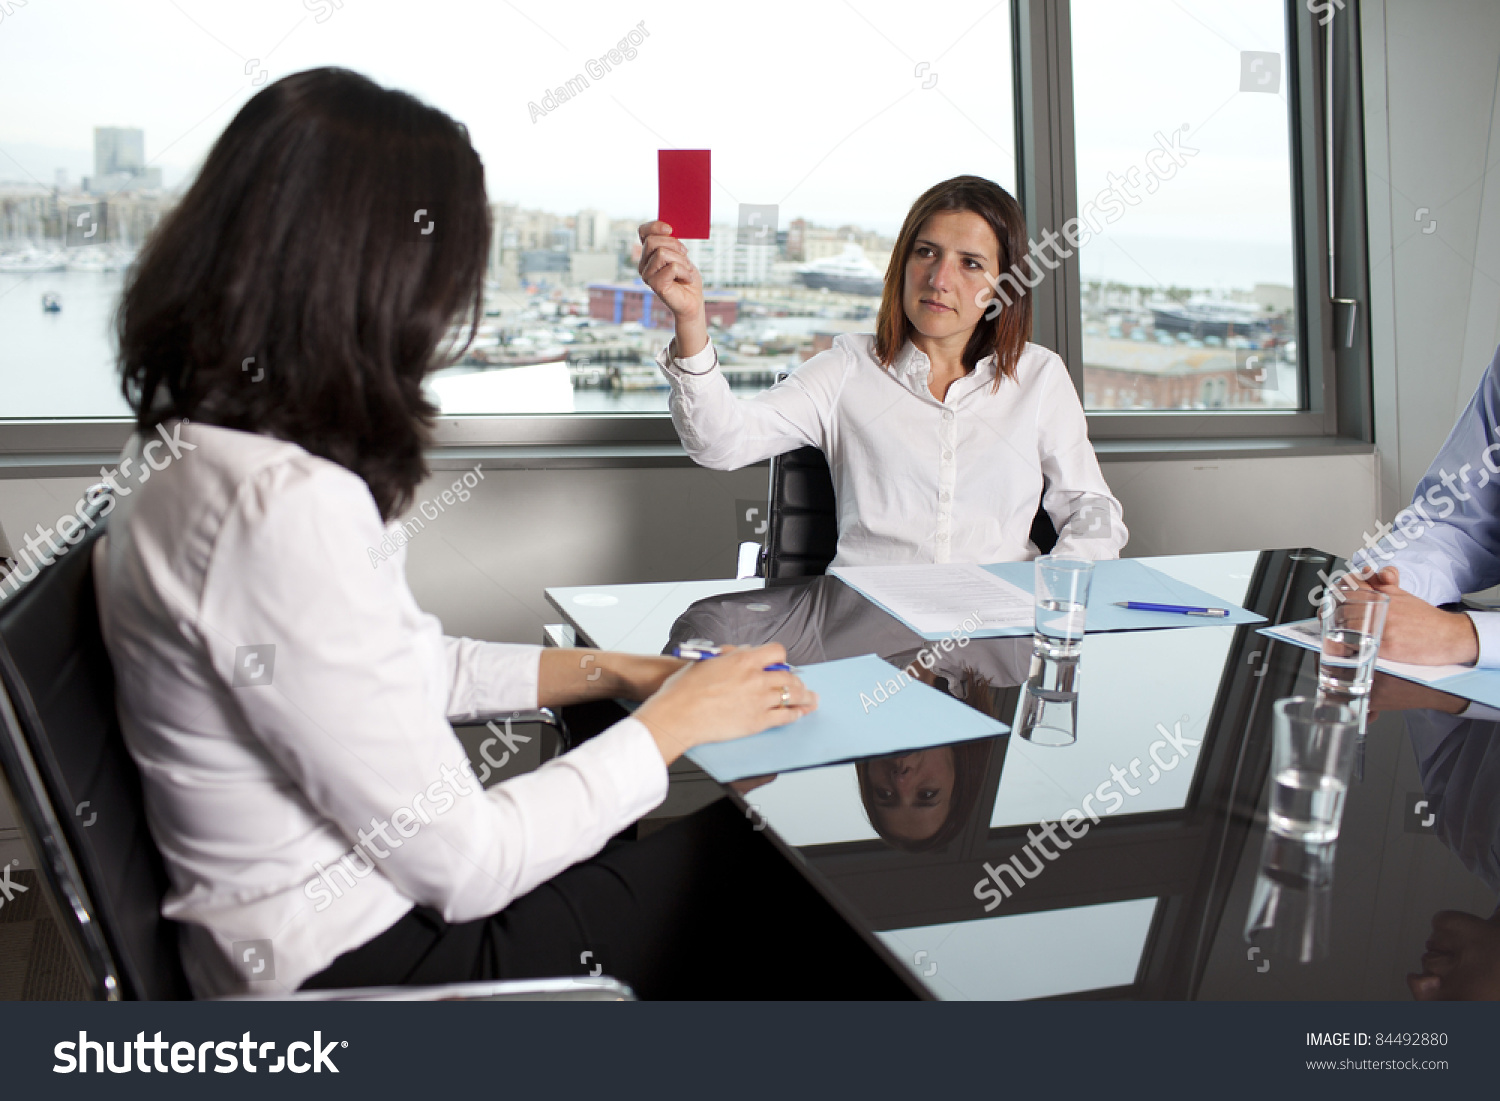 job interview going bad stock photo shutterstock job interview going bad